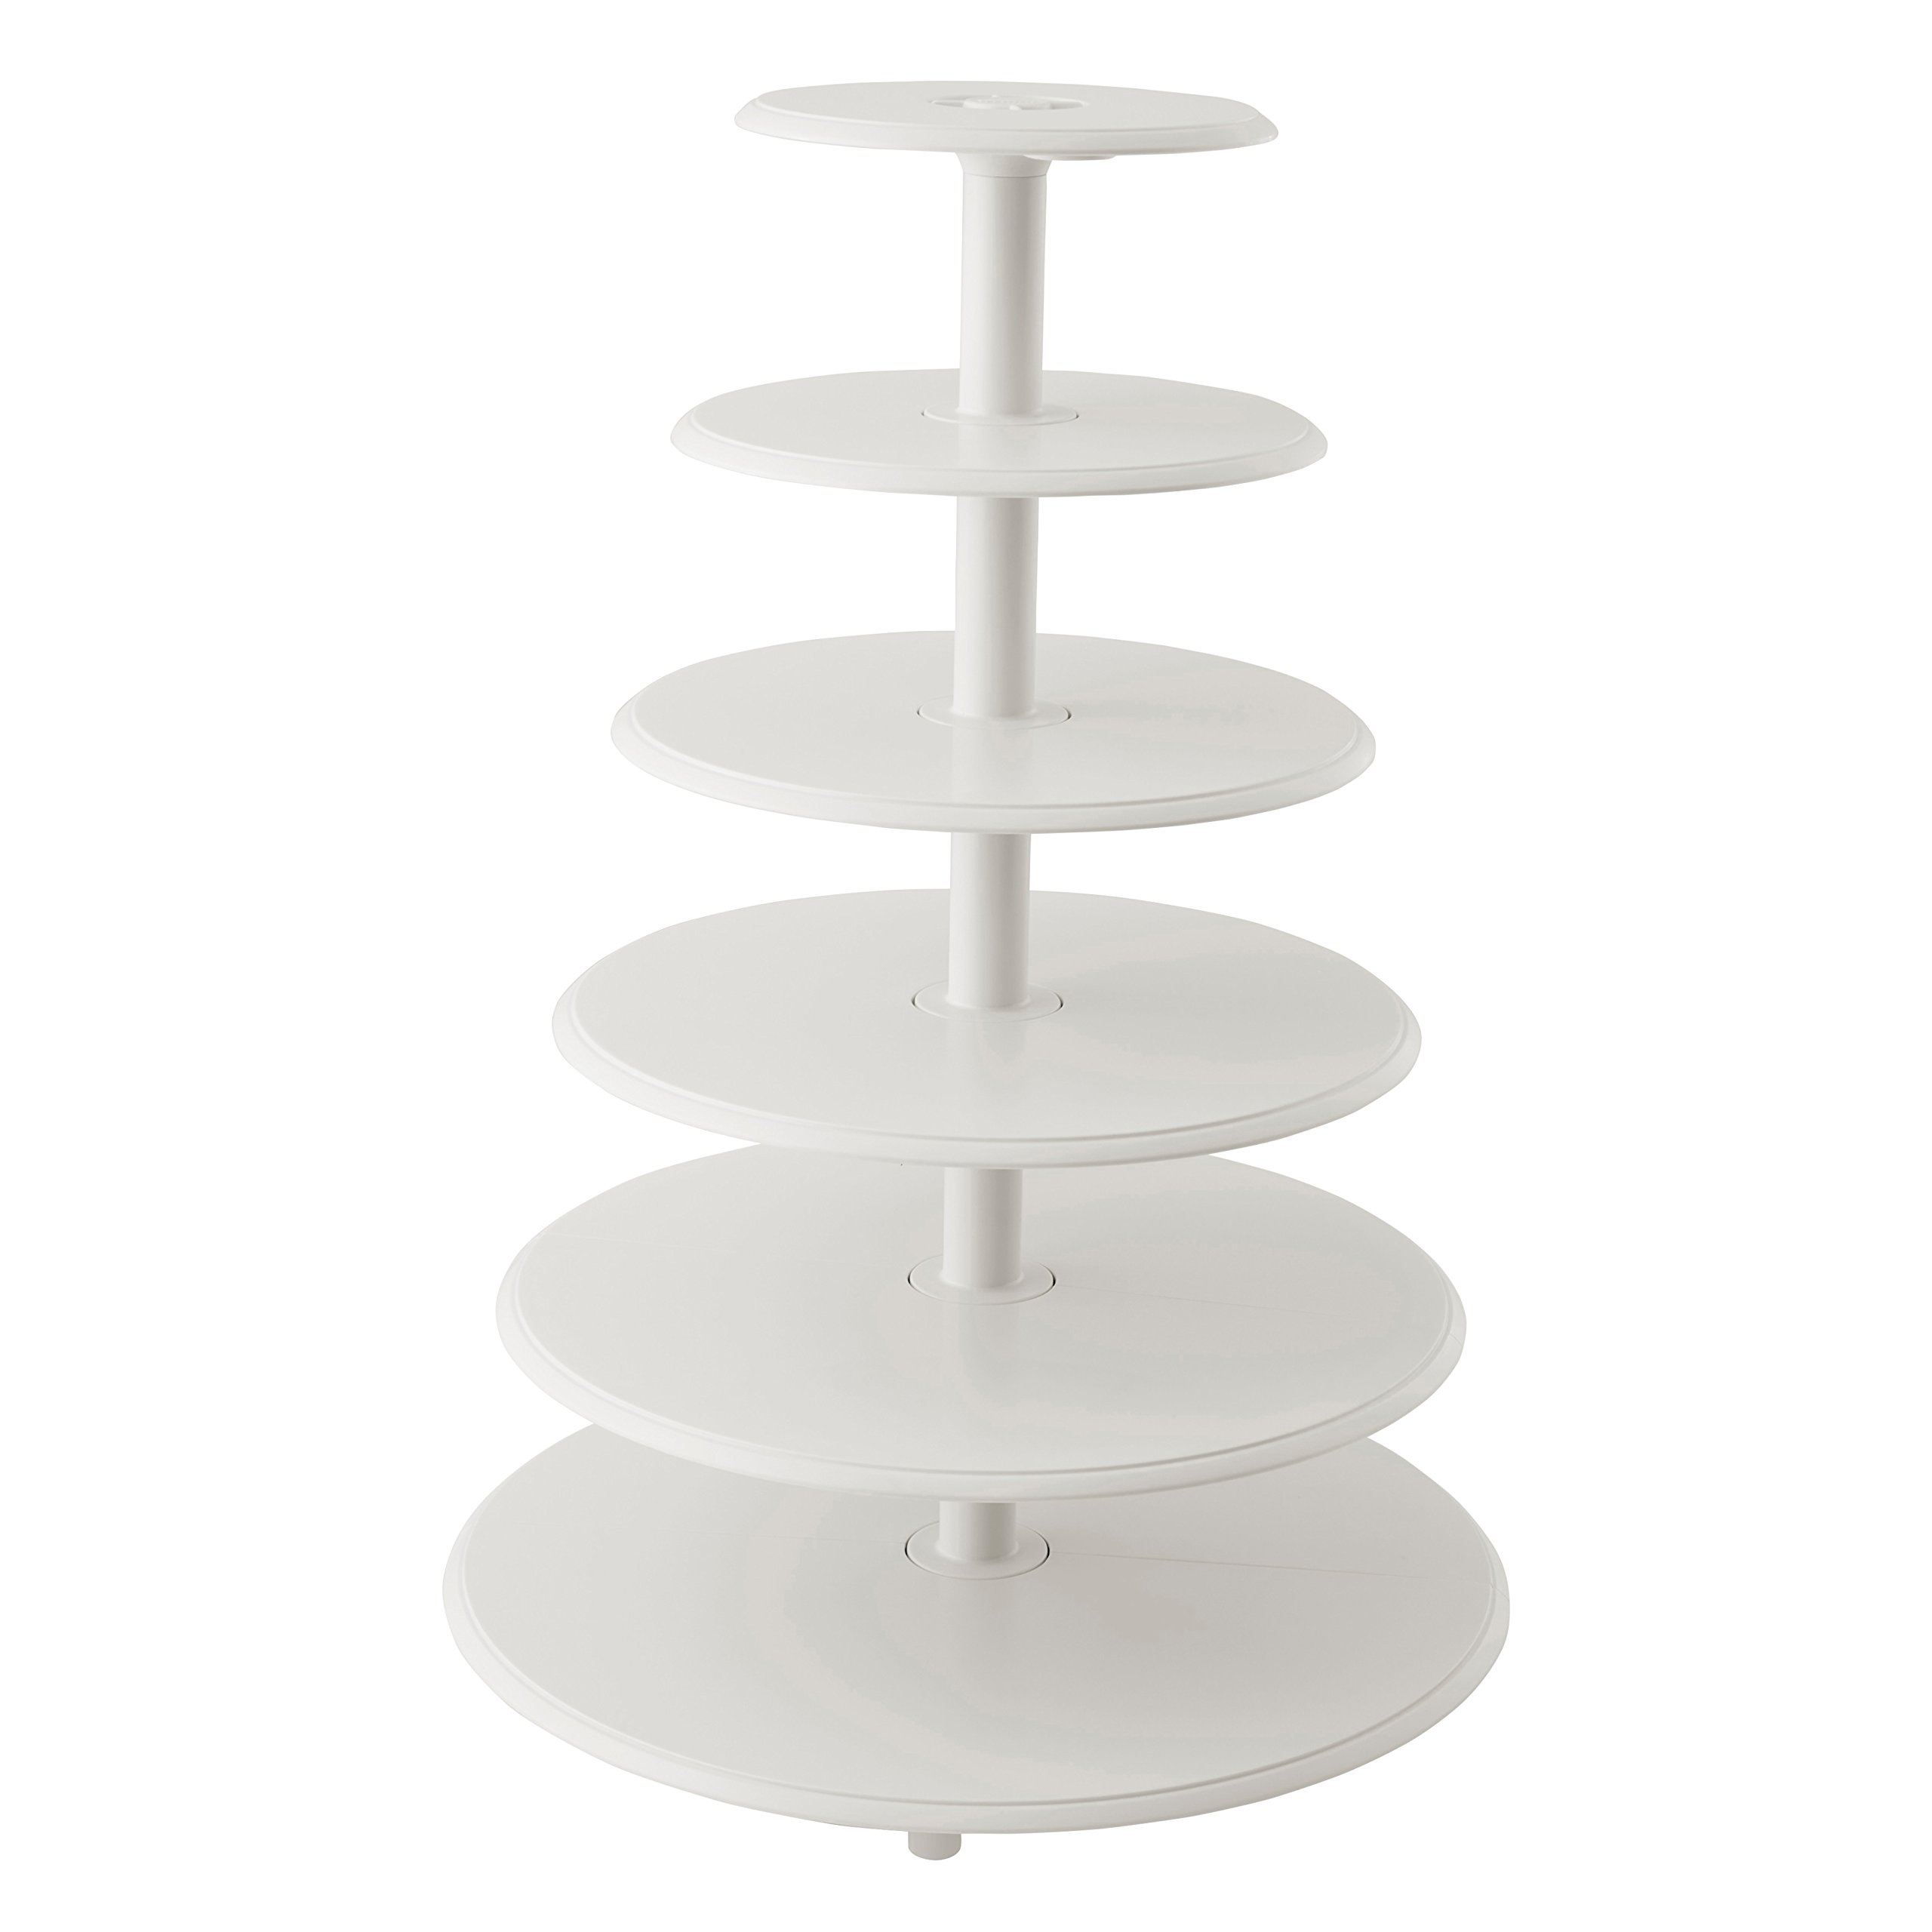 Wilton Towering Tiers Cupcake and Dessert Stand, Great for Displaying Cupcakes, Danishes and Your Favorite Hors d'Oeuvres, White, 3-foot, 28-Piece by Wilton